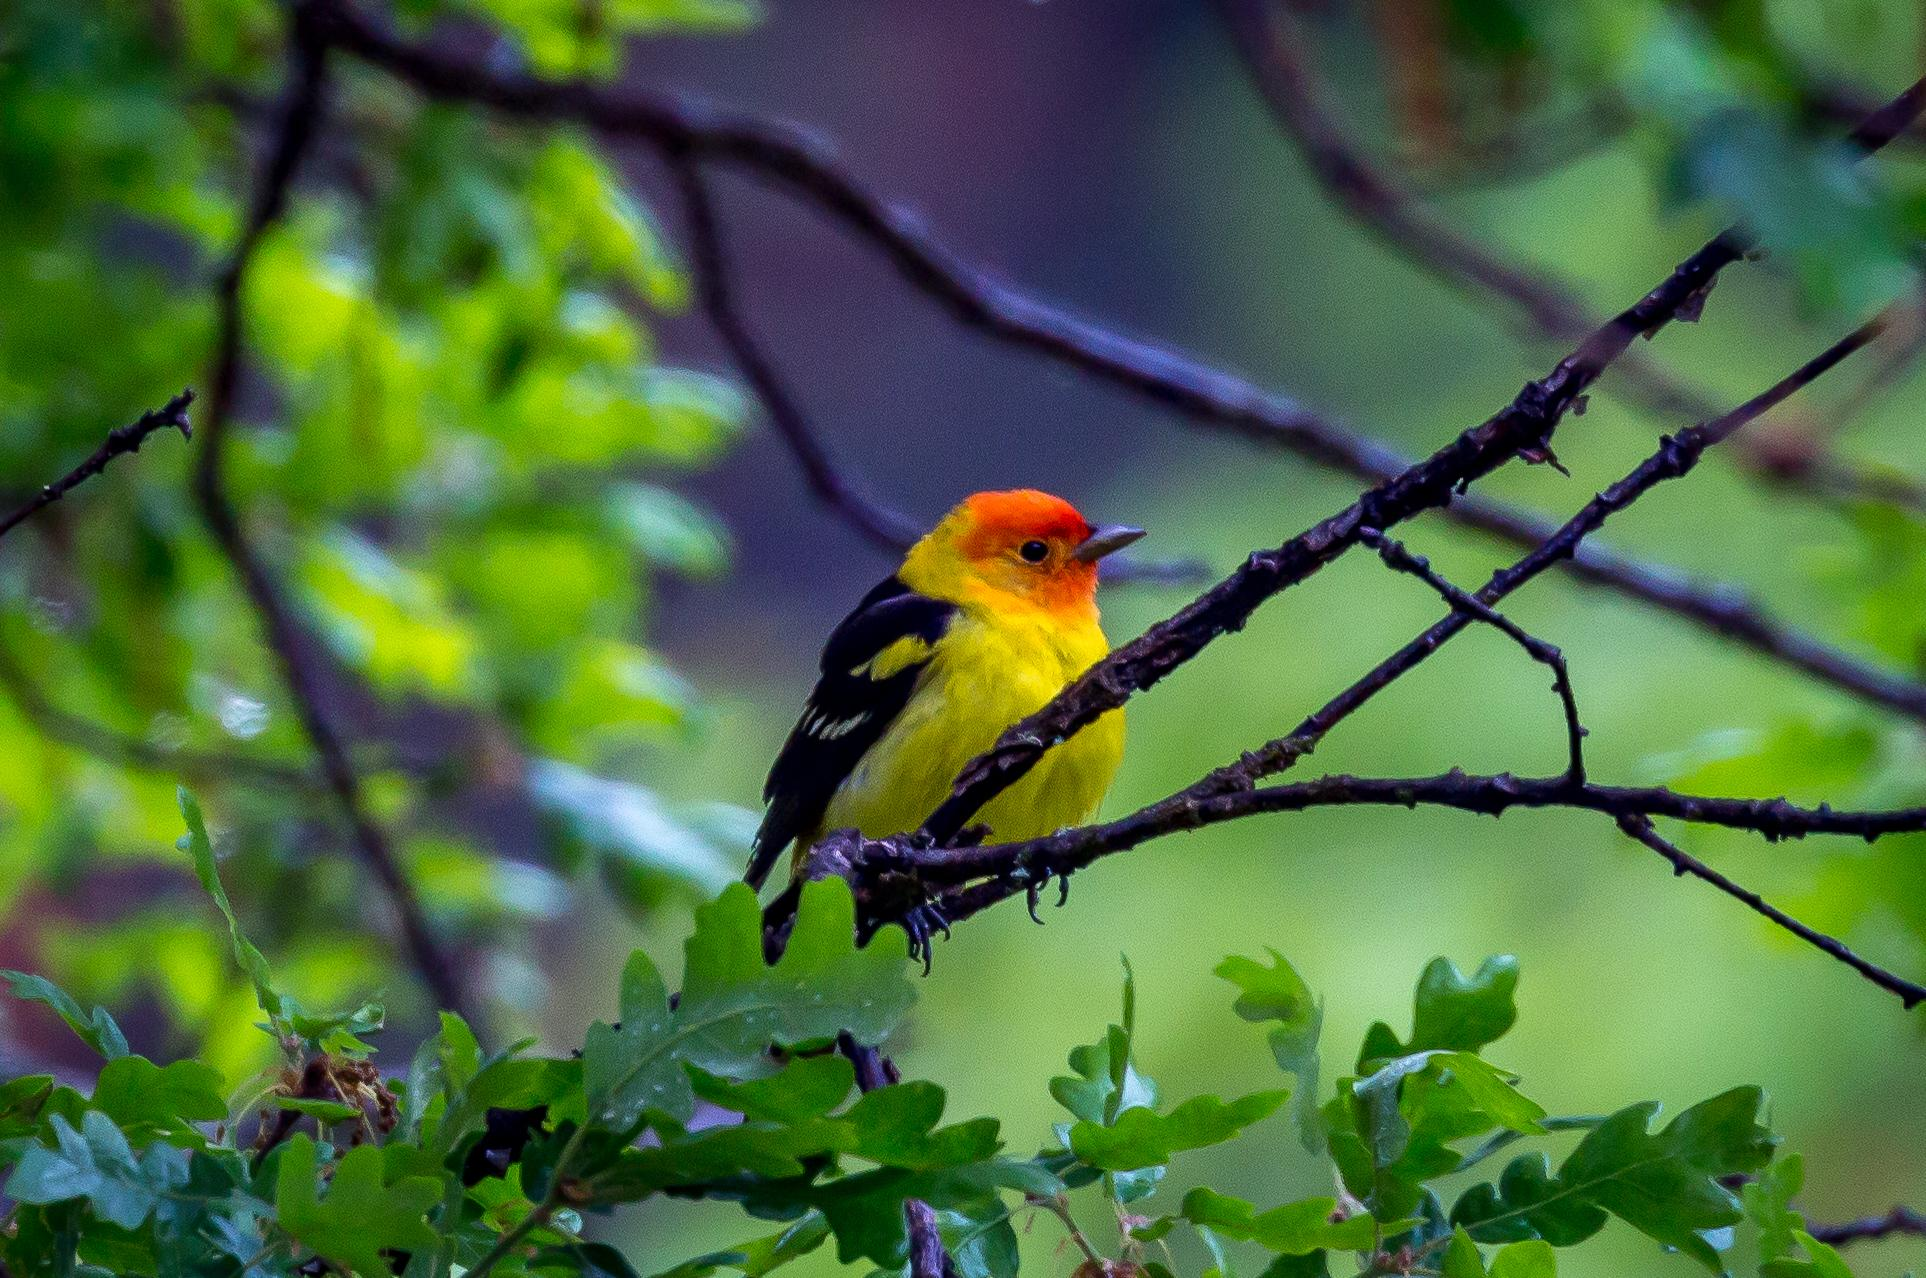 Photo by Nick VianiA Western tanager near Grizzly Peak.